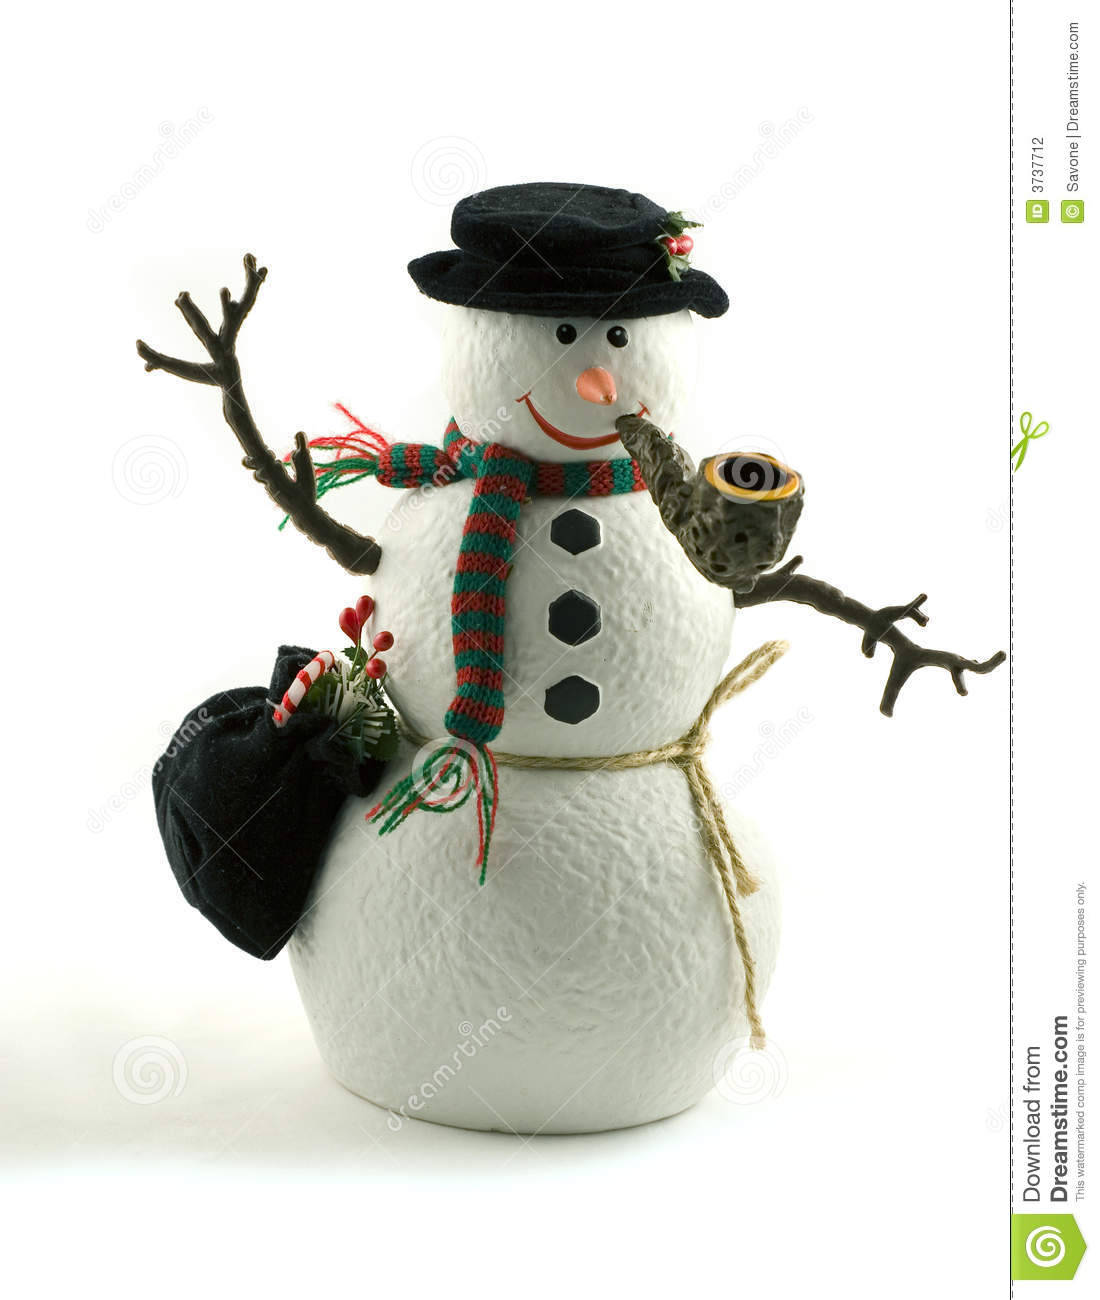 snowman decoration smoking a pipe stock photo image of green winter 3737712. Black Bedroom Furniture Sets. Home Design Ideas